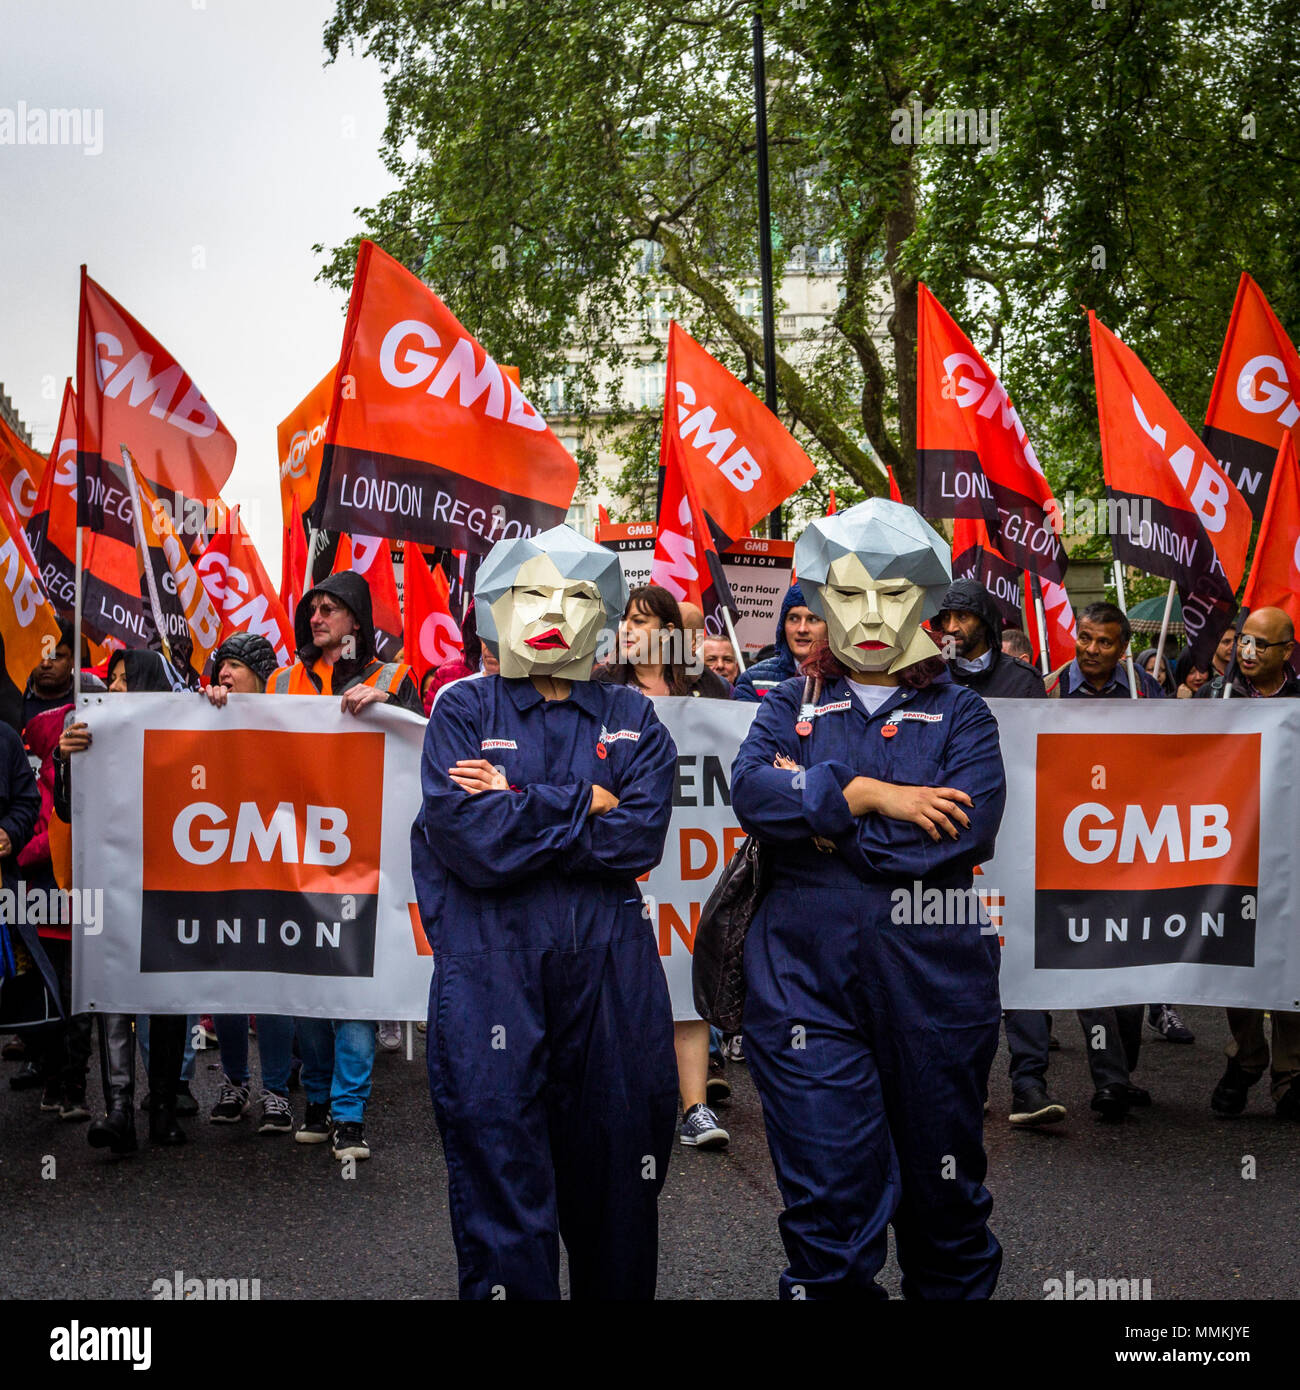 12 May 2018. London, UK. TUC rally to demand 'new deal' for workers, and improved public services. Thousands of protesters marched from Embankment to Hyde Park, calling for higher minimum wage, an end to zero-hours contracts and increased funding for essential public services. - Stock Image